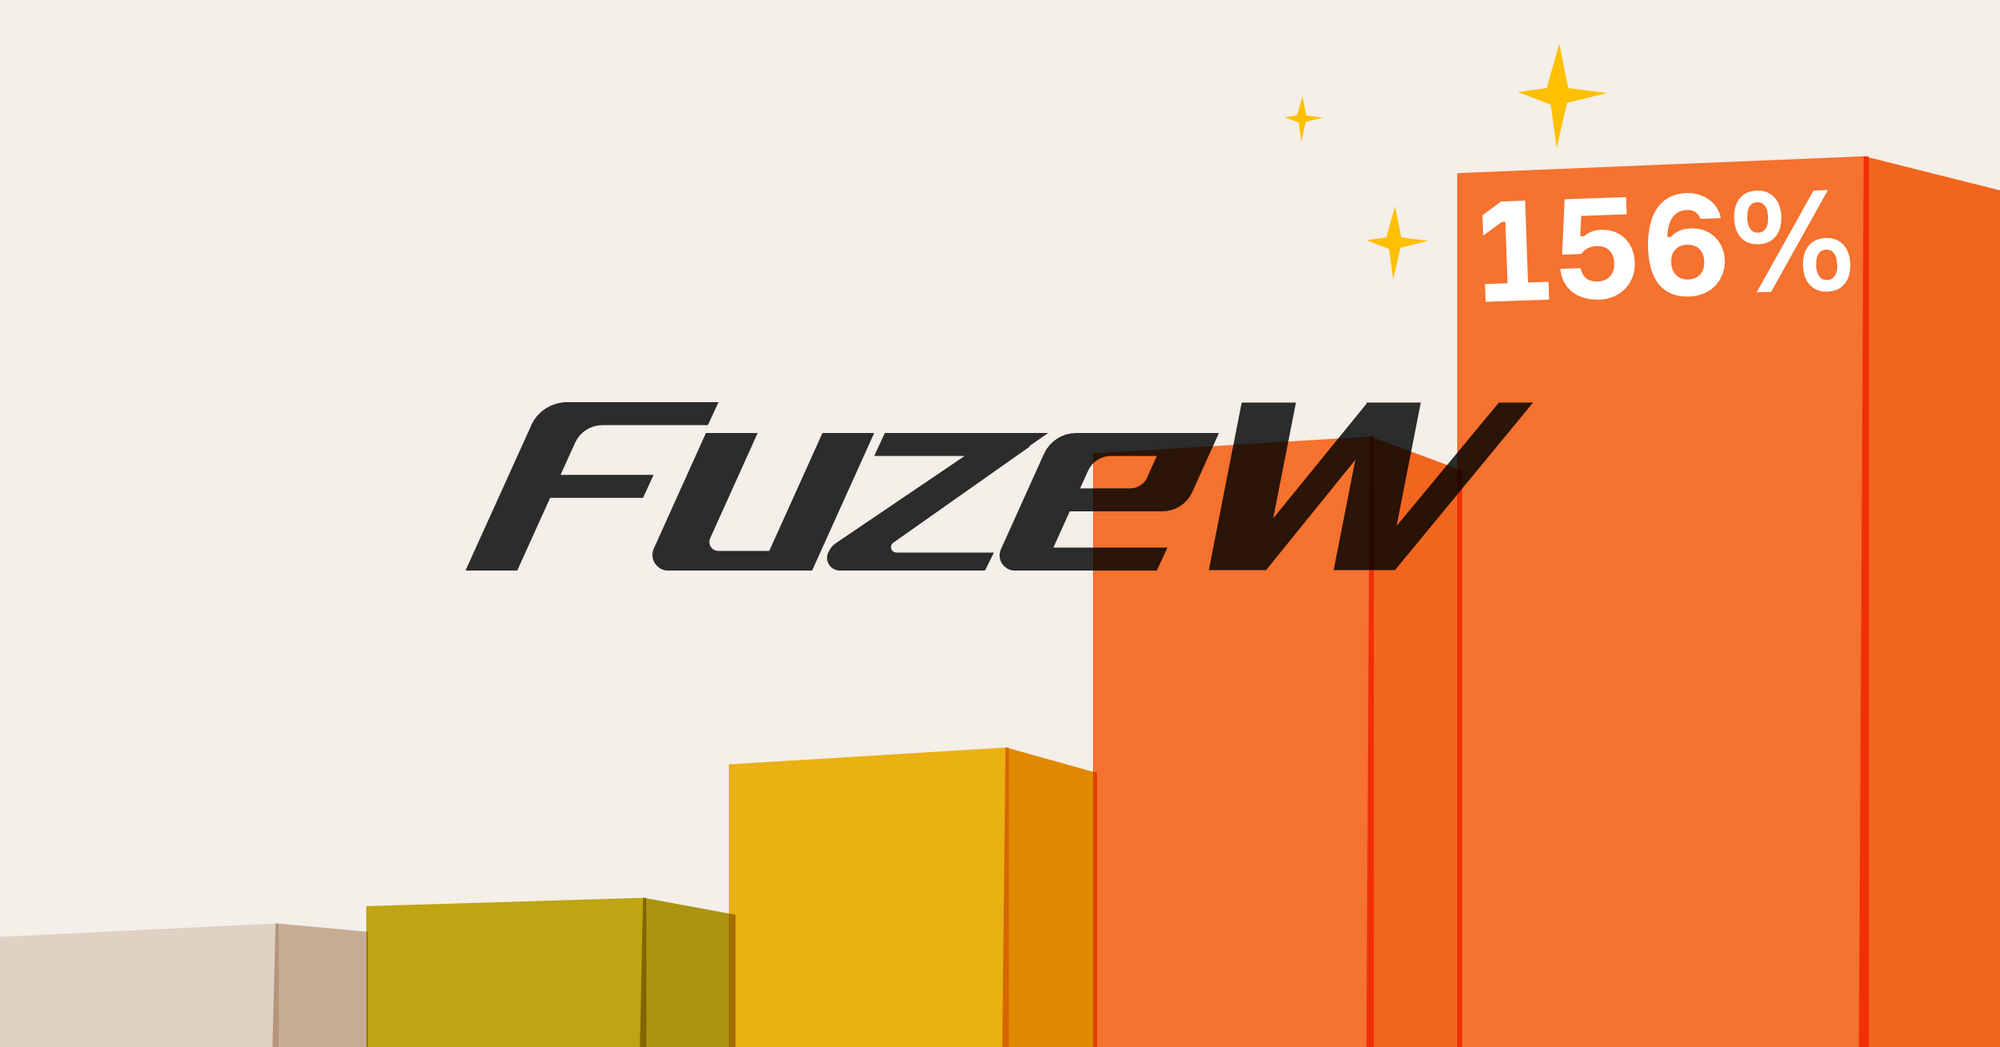 How Crypto Hardware Wallet FuzeW Increased Sales By 156%